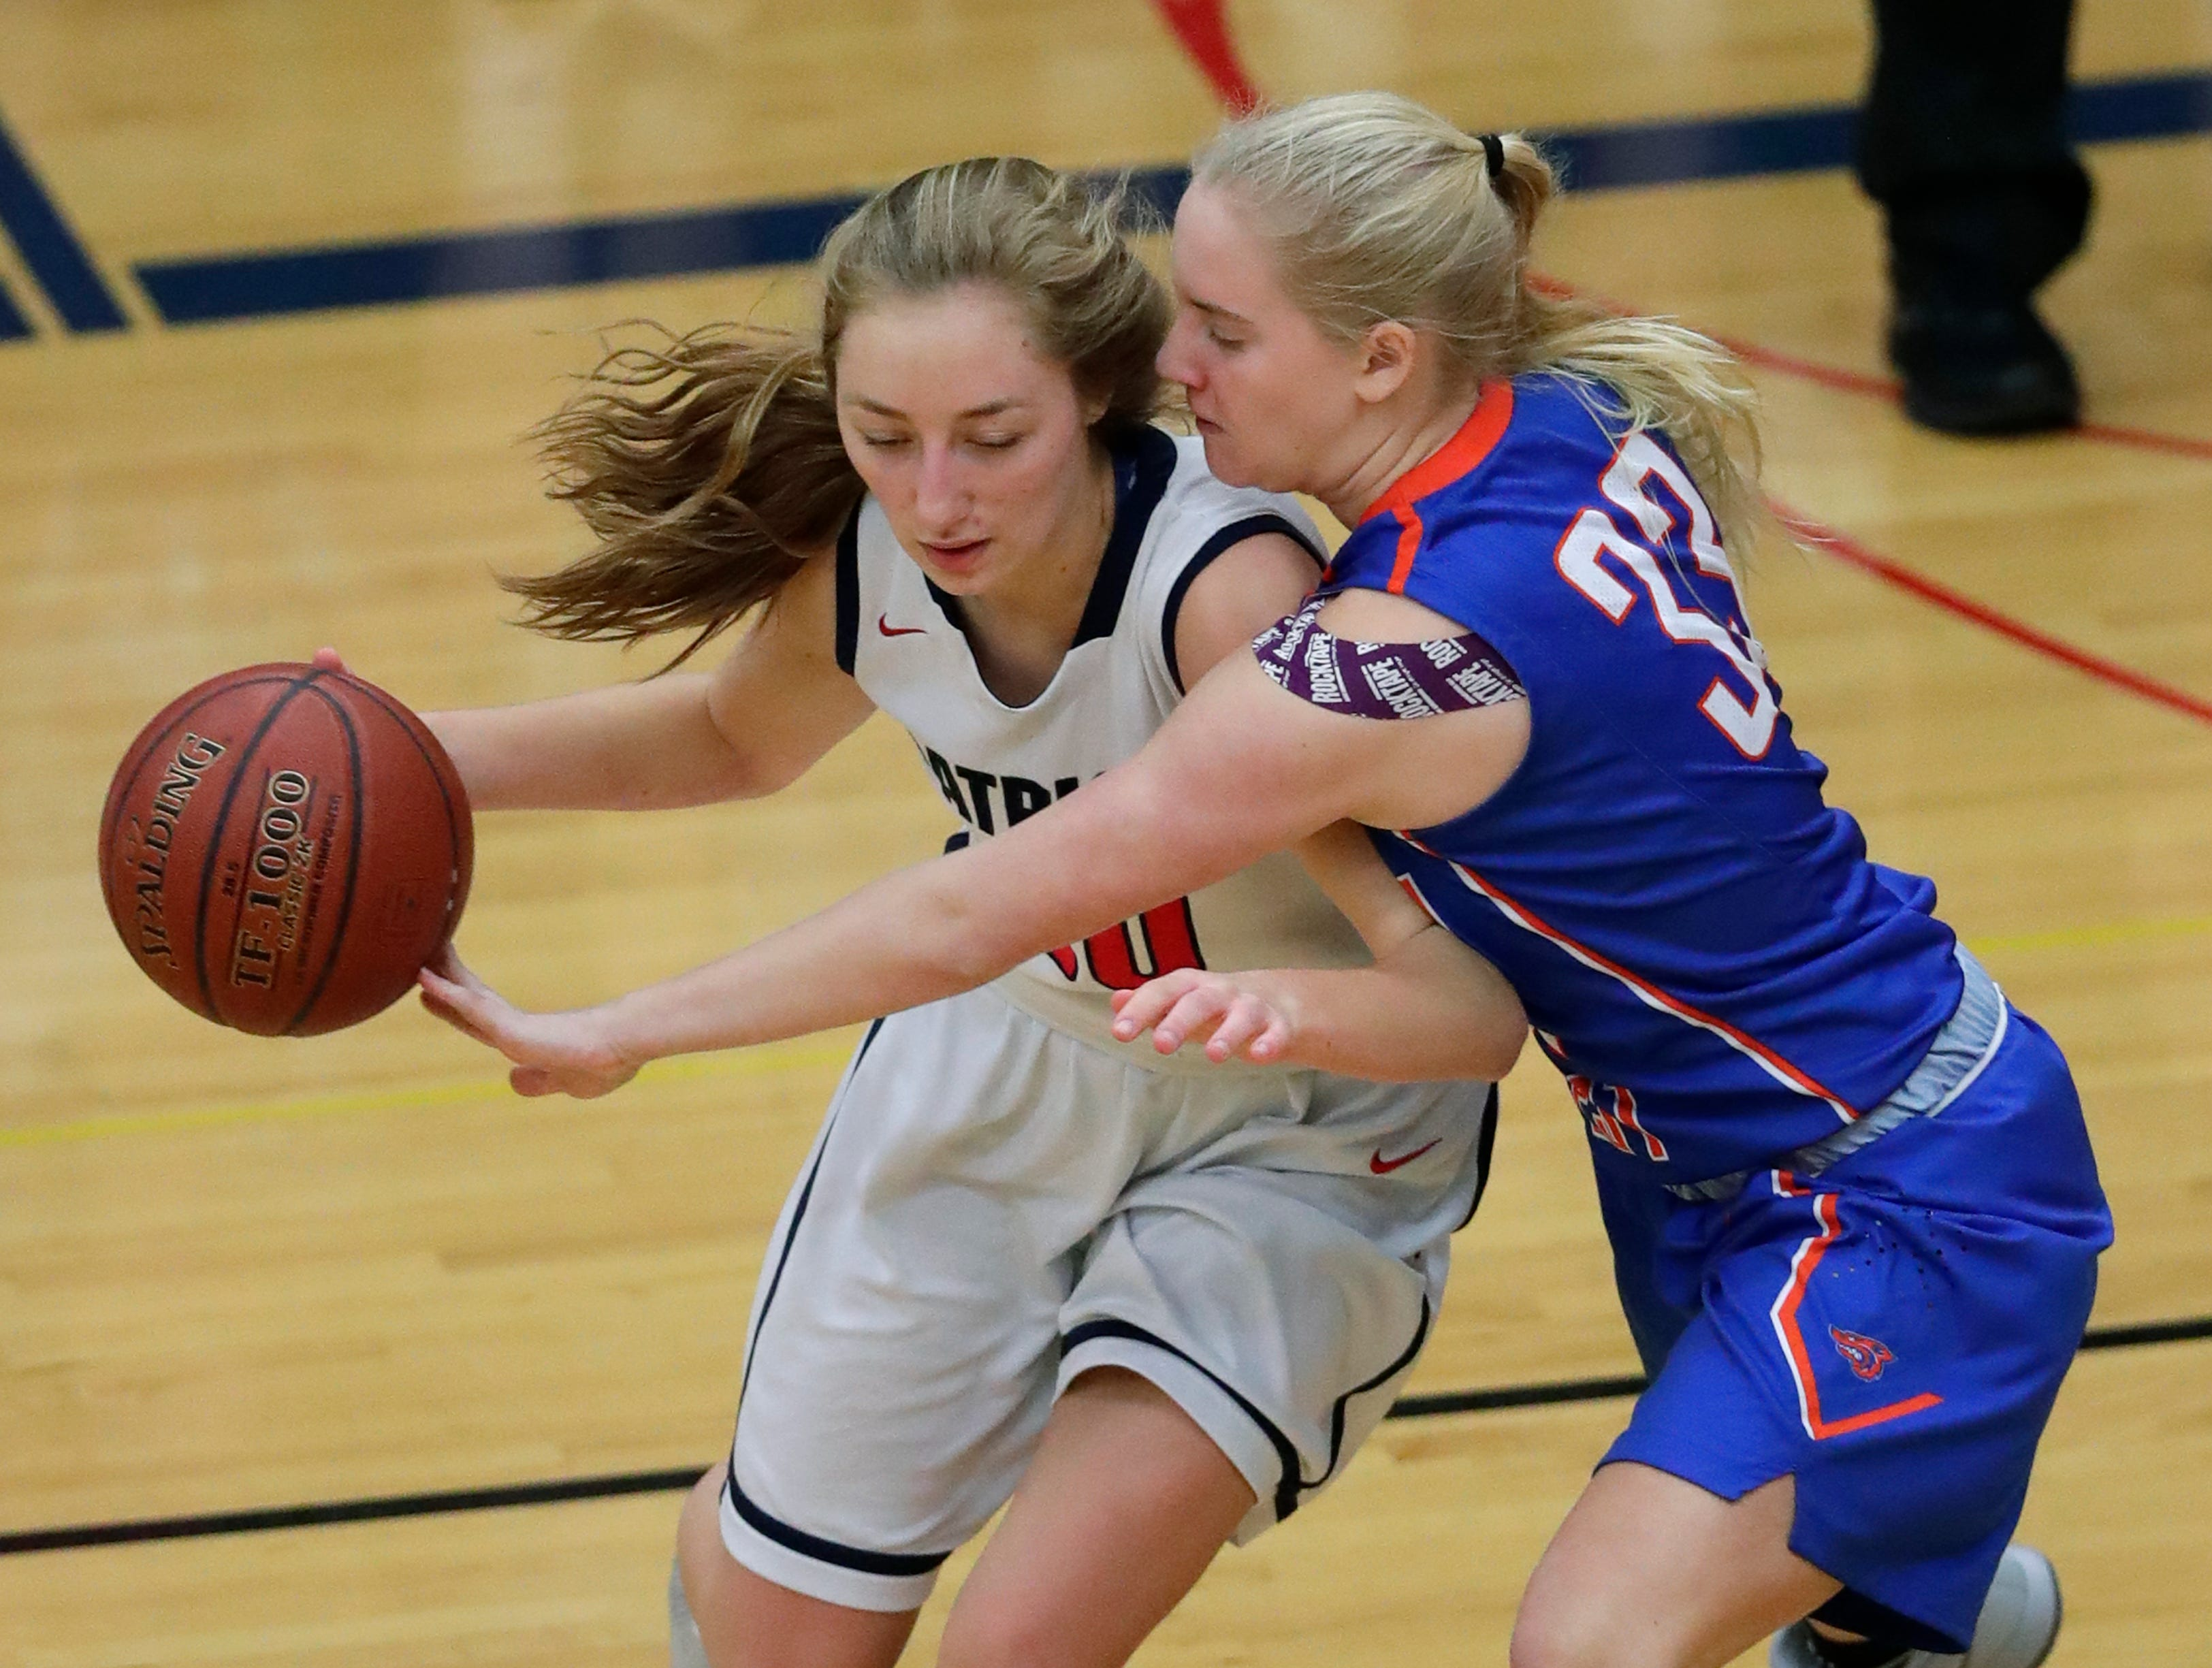 Appleton West High School's McKayla Knoebel (33) knocks the ball away from Appleton East High School's Cameron Neubauer (10) during their girls basketball game Friday, January 11, 2019, at Appleton East High School in Appleton, Wis. 